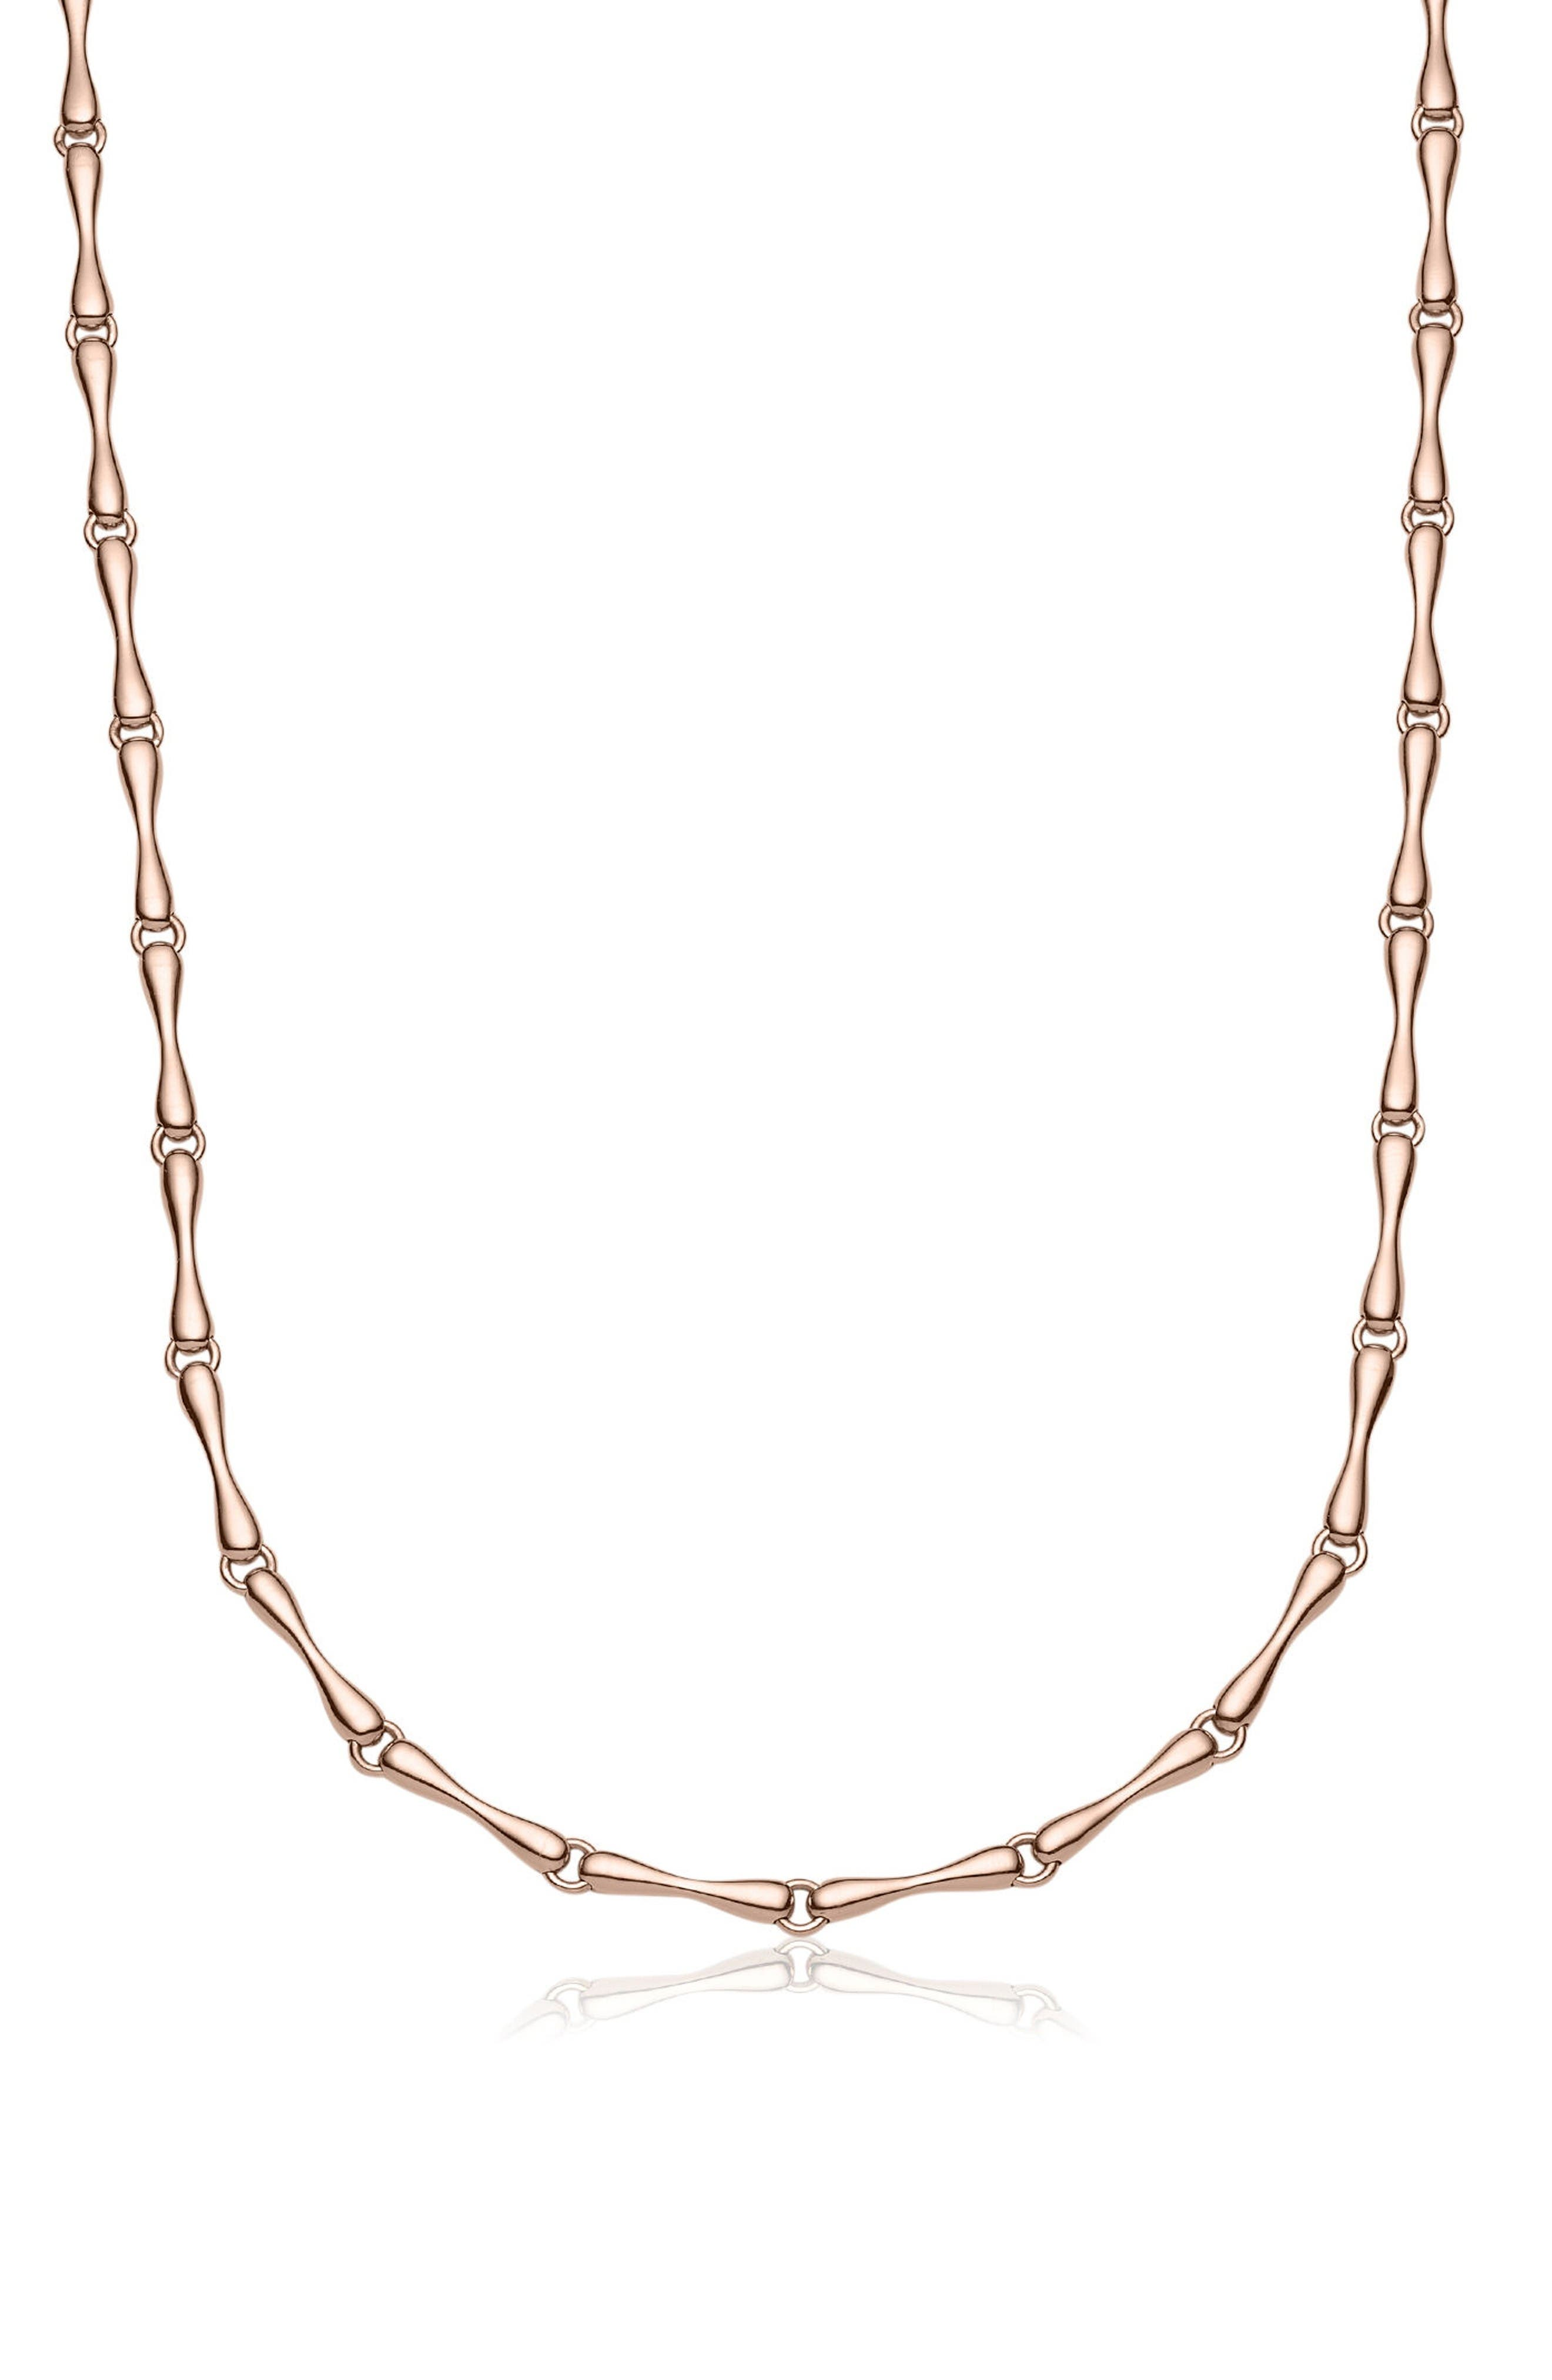 Nura Reef Chain Necklace,                             Main thumbnail 1, color,                             Rose Gold